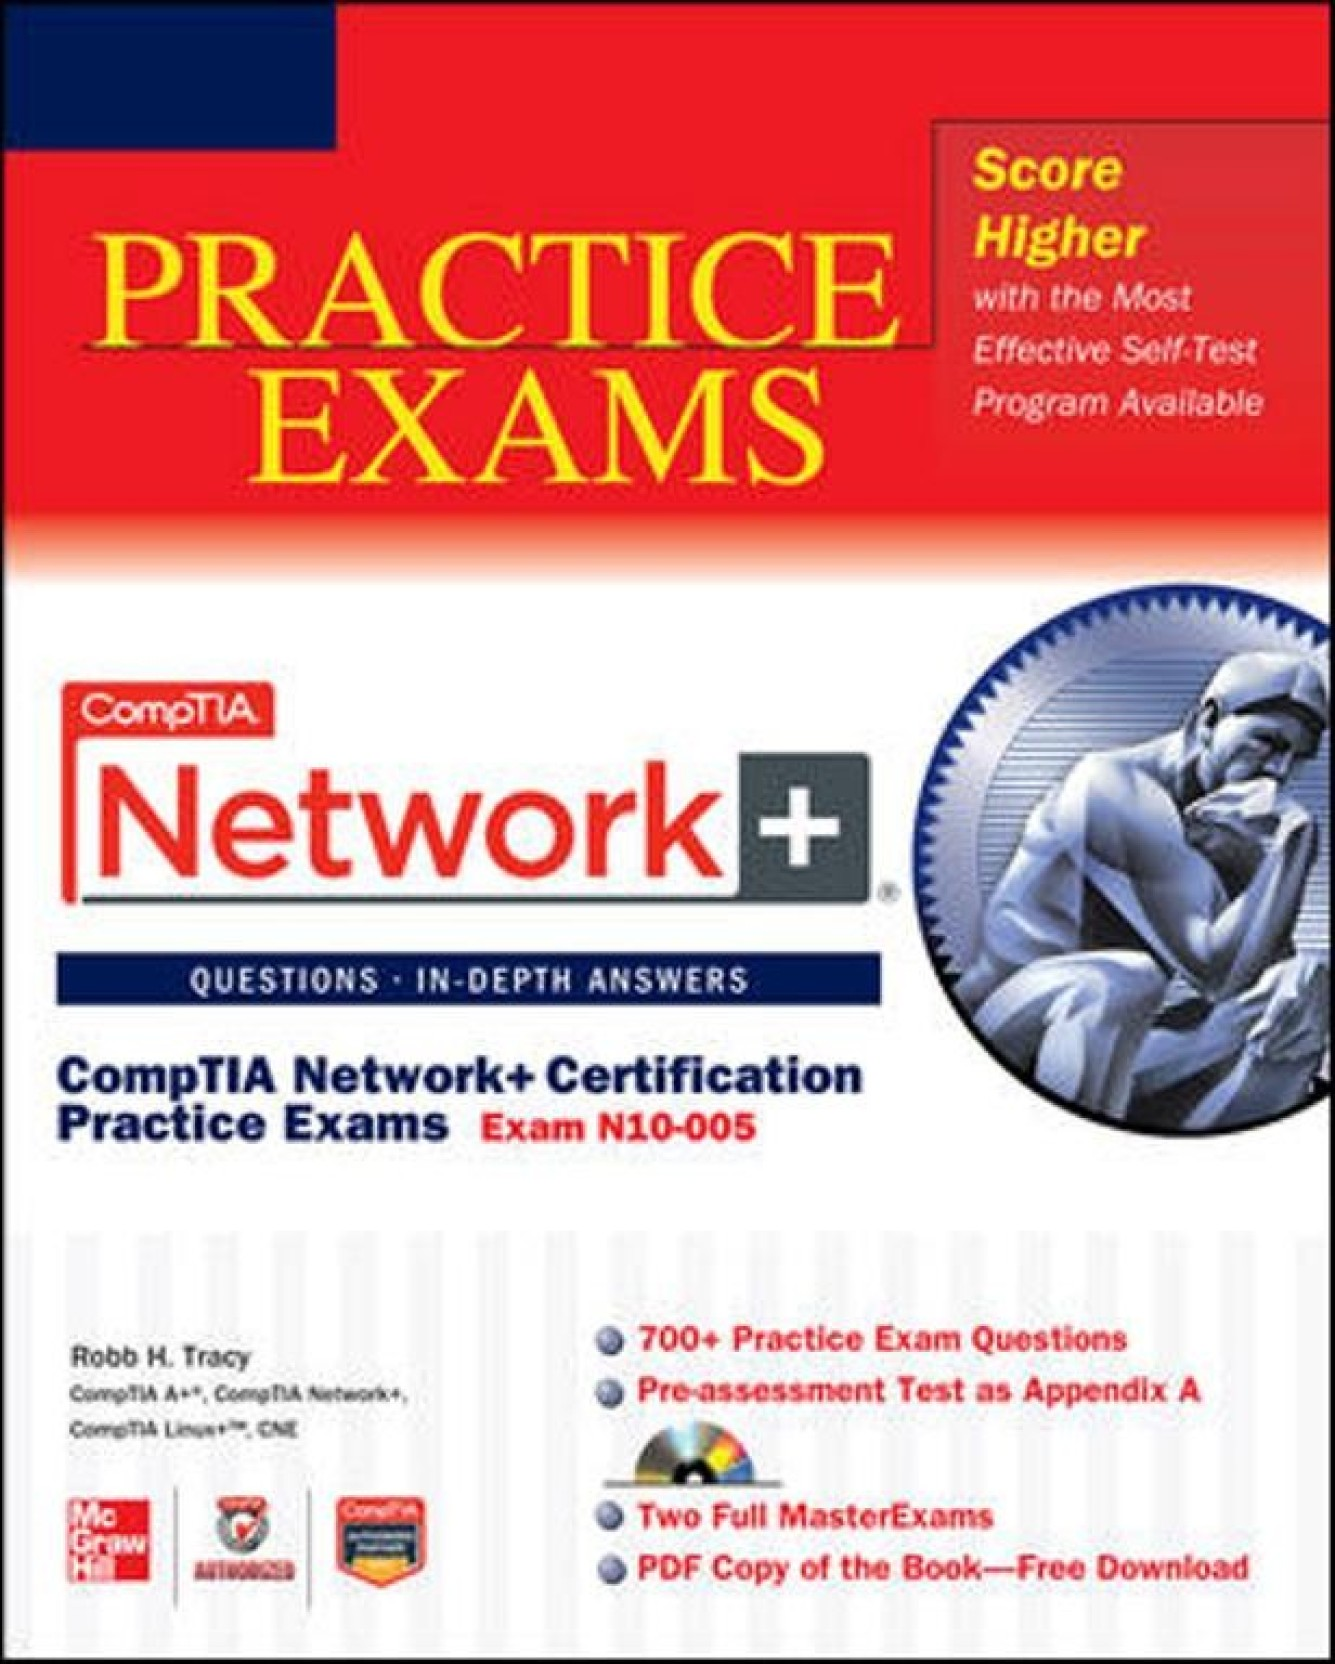 CompTIA Network+ Questions In Depth Answers Practice Exams